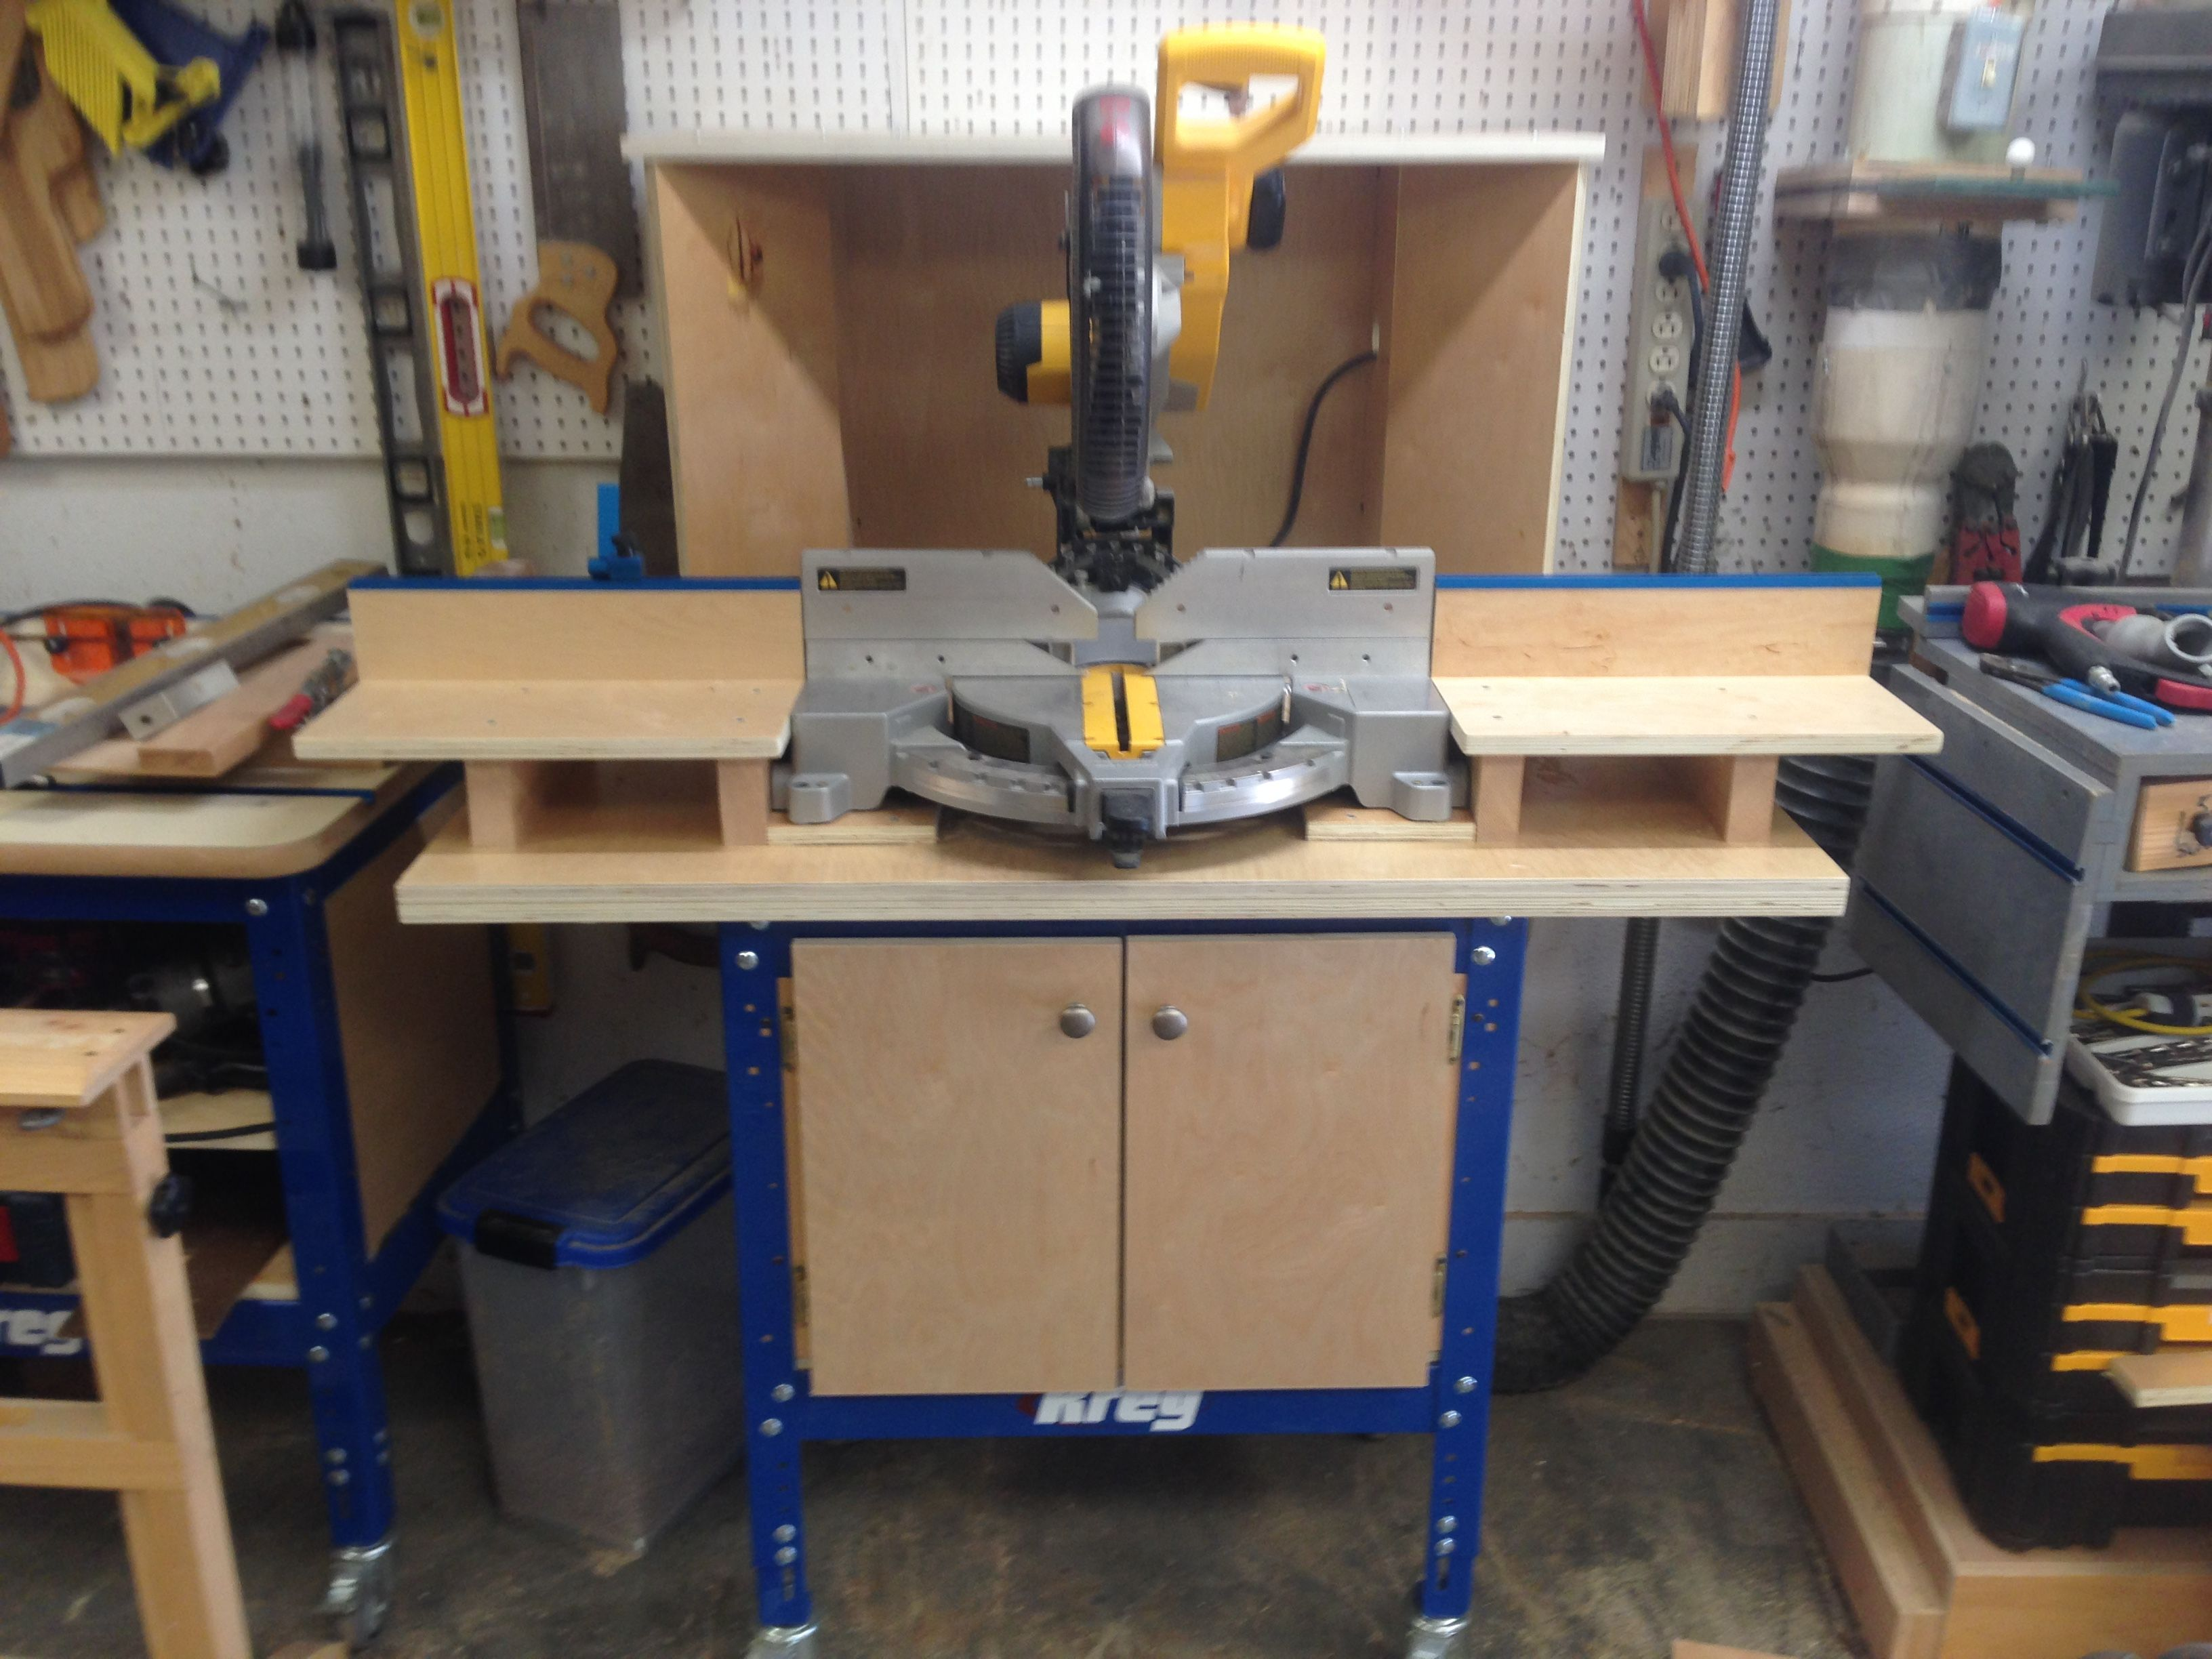 miter saw station -using kreg universal stand with rollers